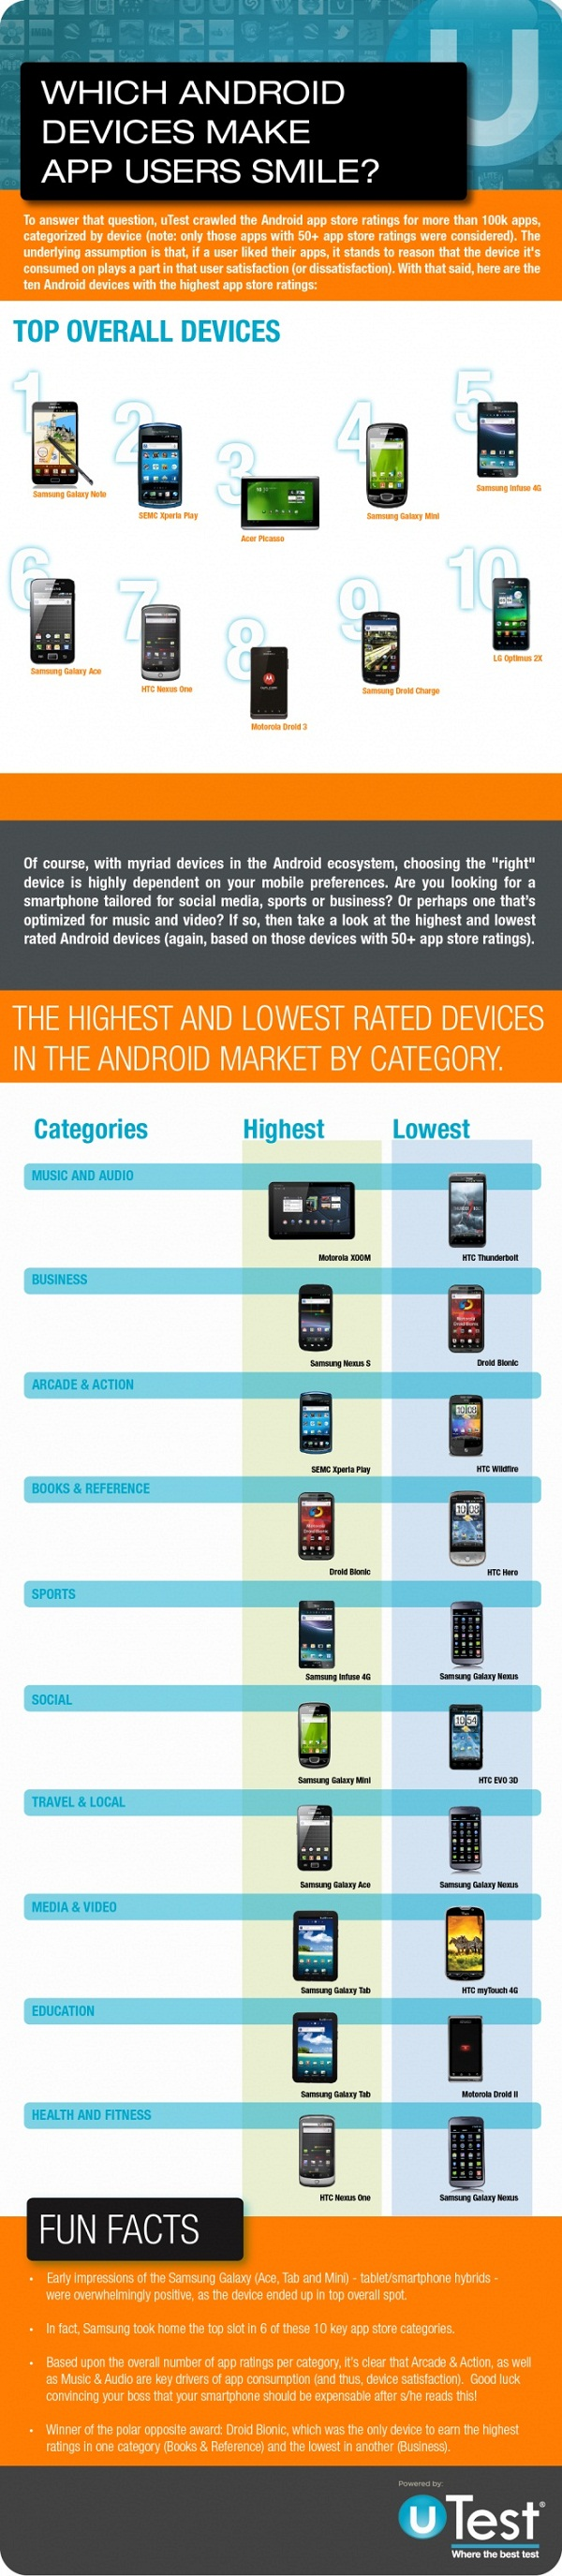 infografia dispositivos android.jpg